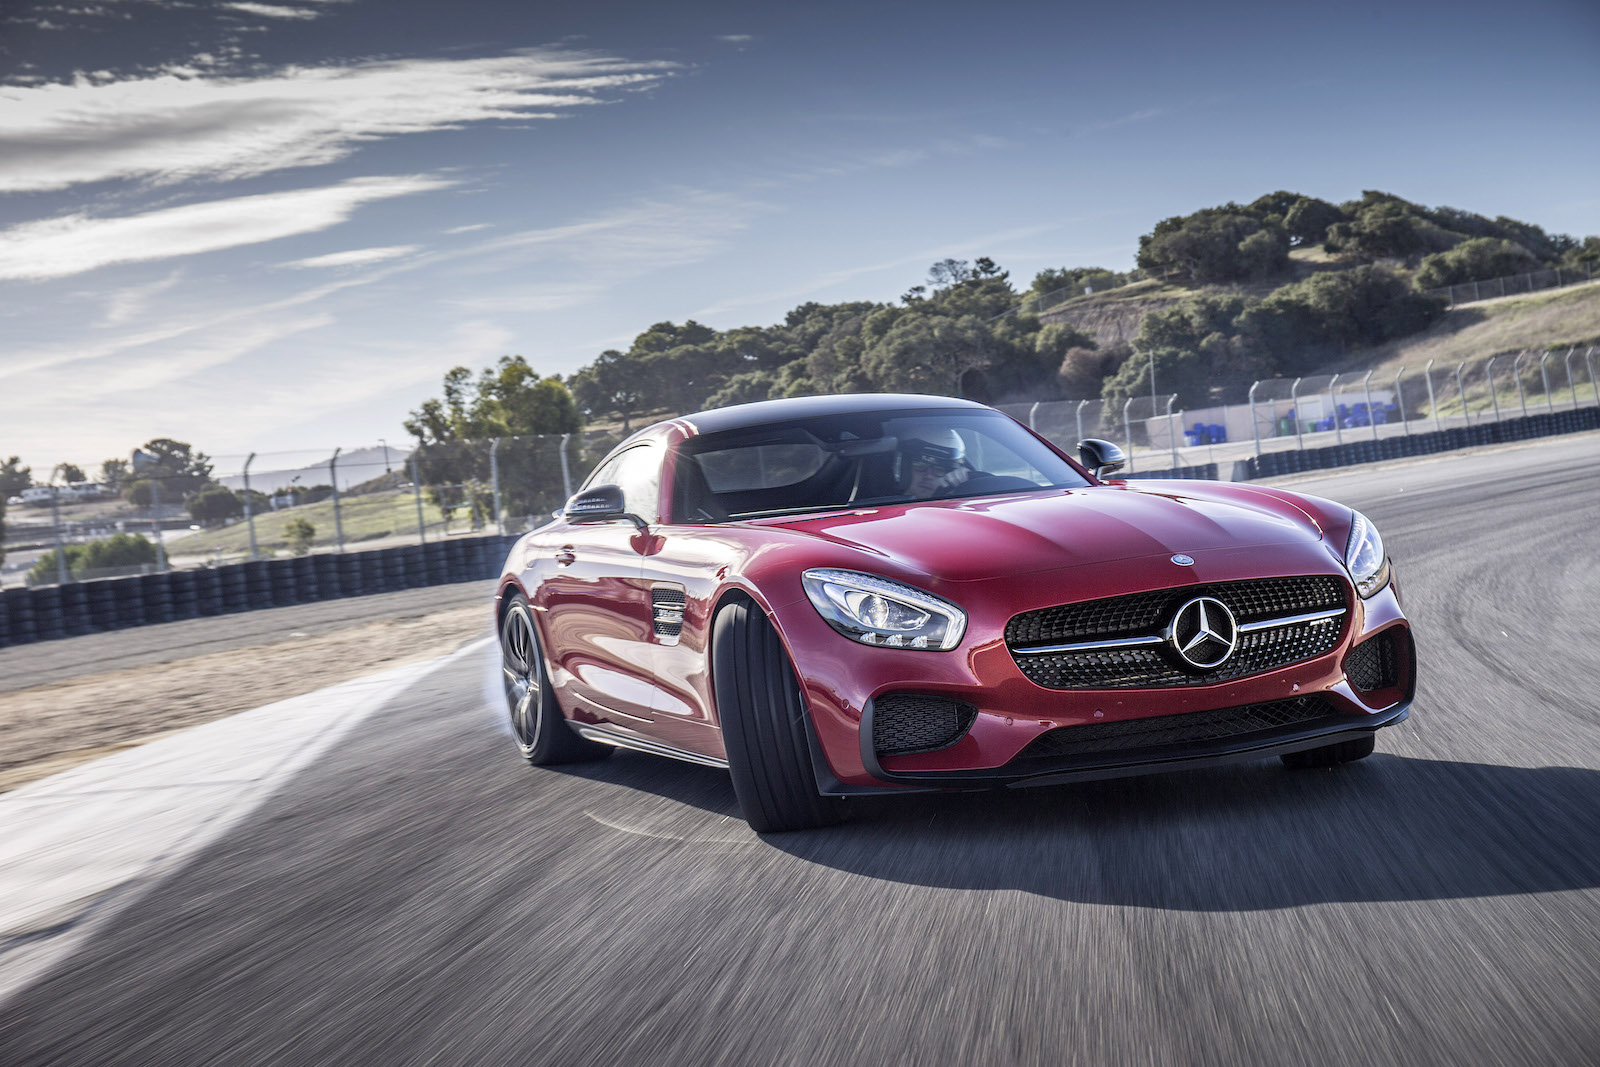 Weststar Reveals New Mercedes-Benz AMG GT